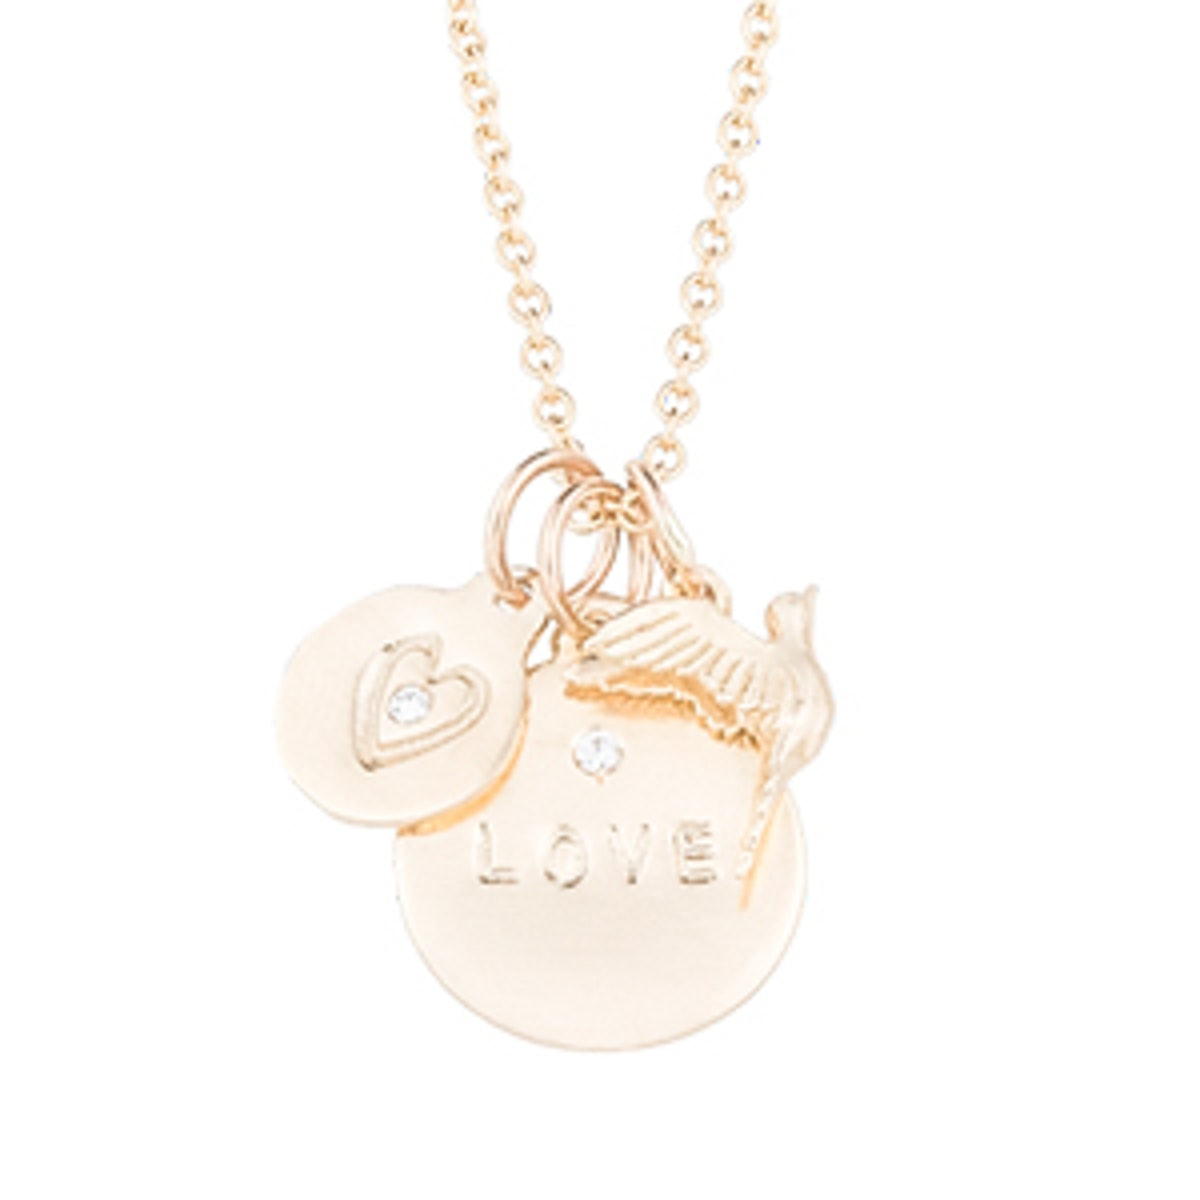 14K Yellow Gold Love Disk with Diamond Necklace